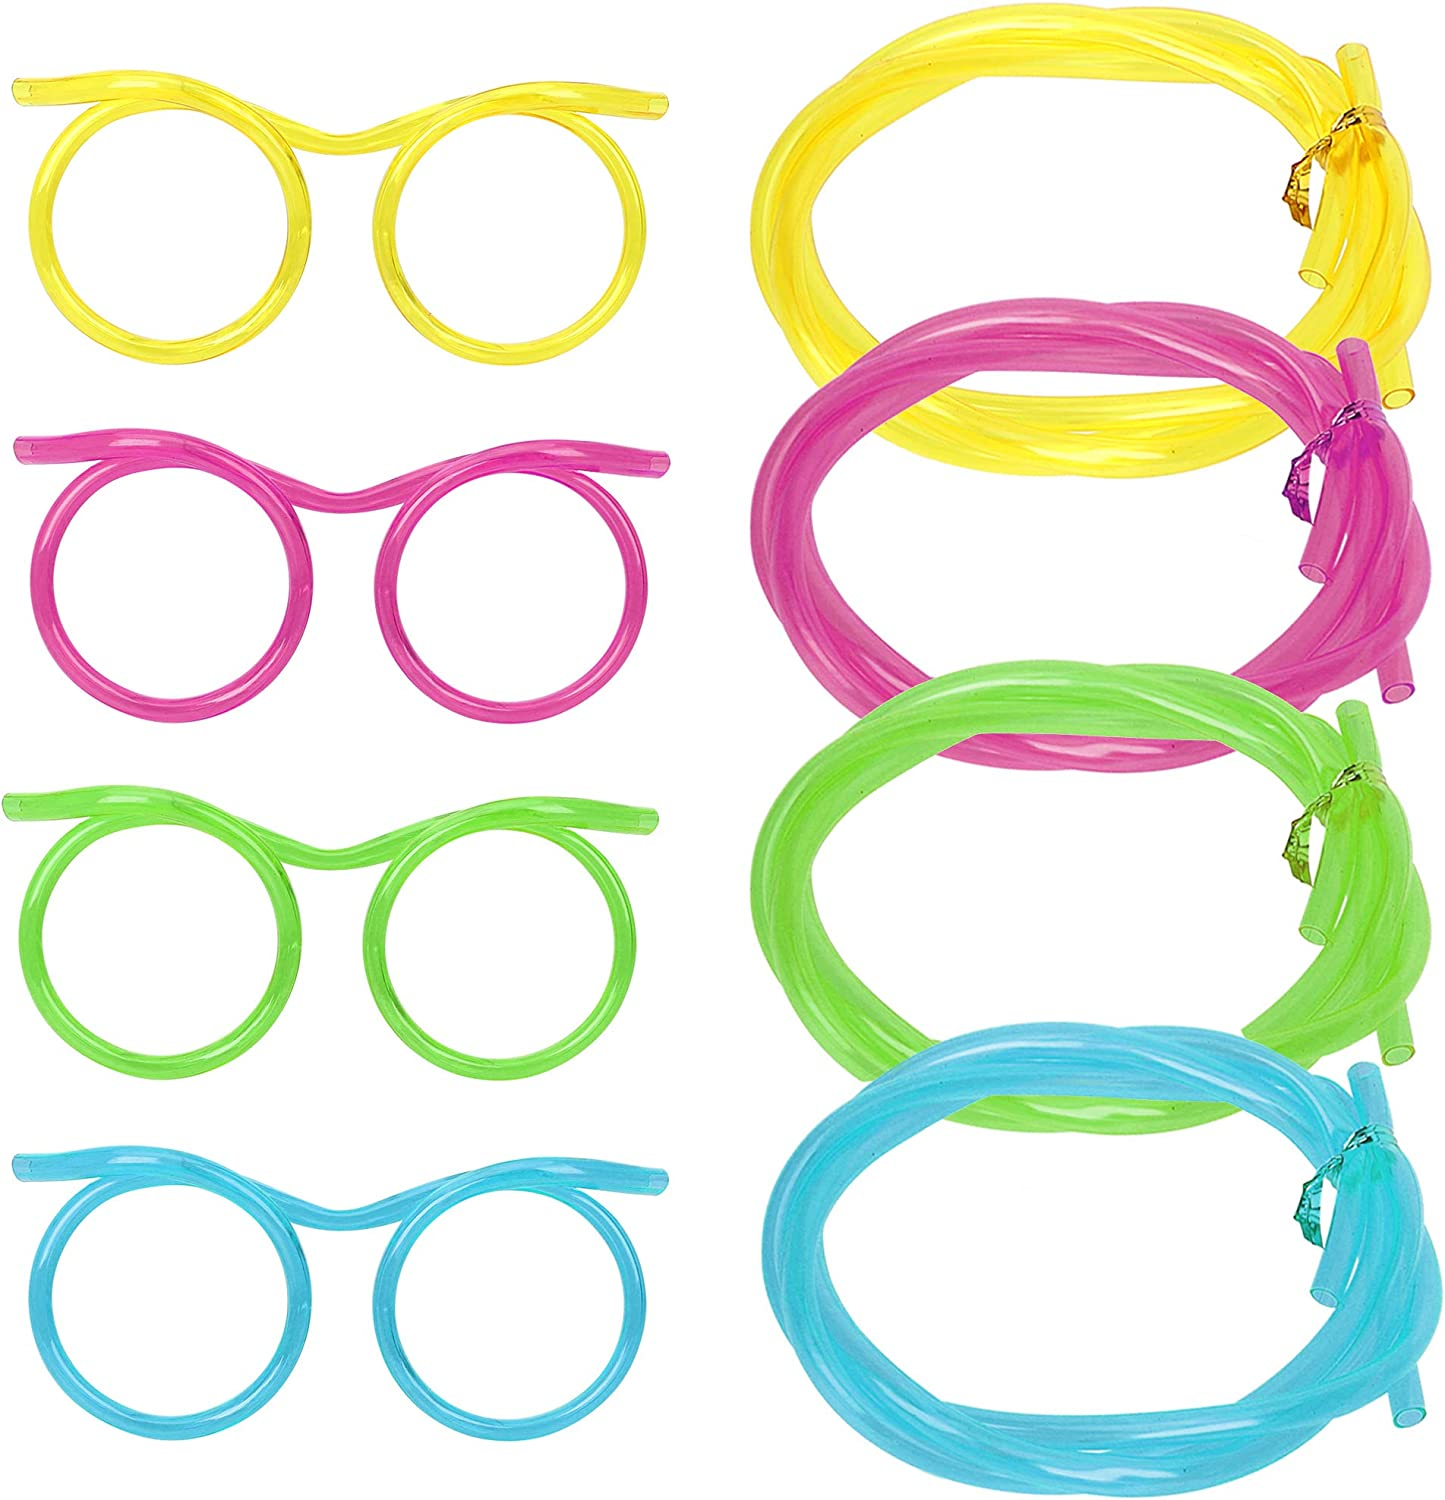 MOTZU 4 Pieces Silly Straws, Novelty Flexible Soft Drink Eyeglasses, Fun Party Drinking Straw Eye Glasses, Crazy Funky Drinking Tube For Party Supplies, Children Kids Birthday (Random Color)